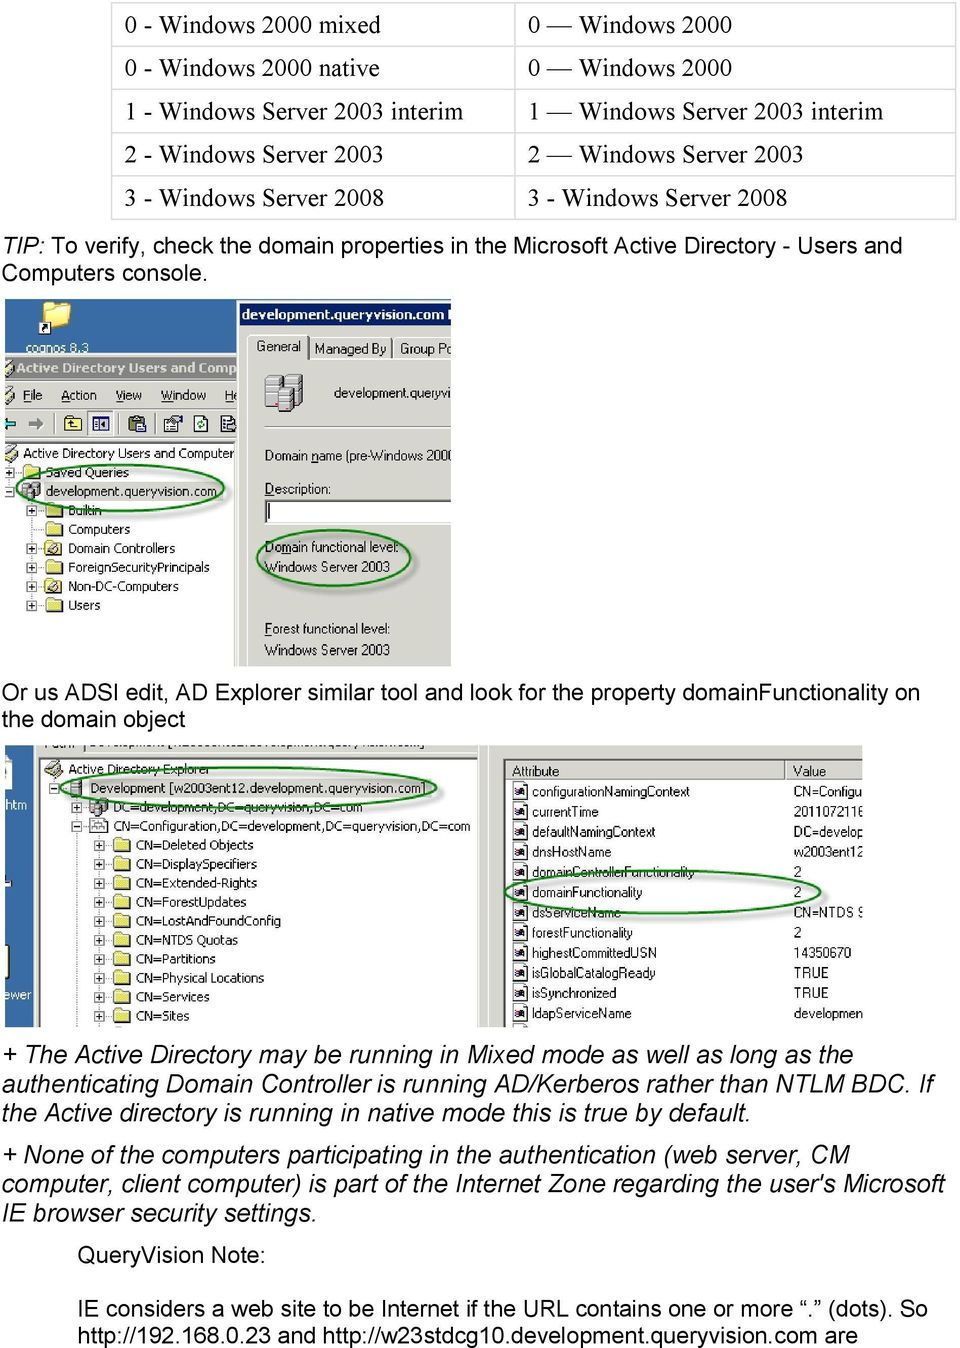 Or us ADSI edit, AD Explorer similar tool and look for the property domainfunctionality on the domain object + The Active Directory may be running in Mixed mode as well as long as the authenticating